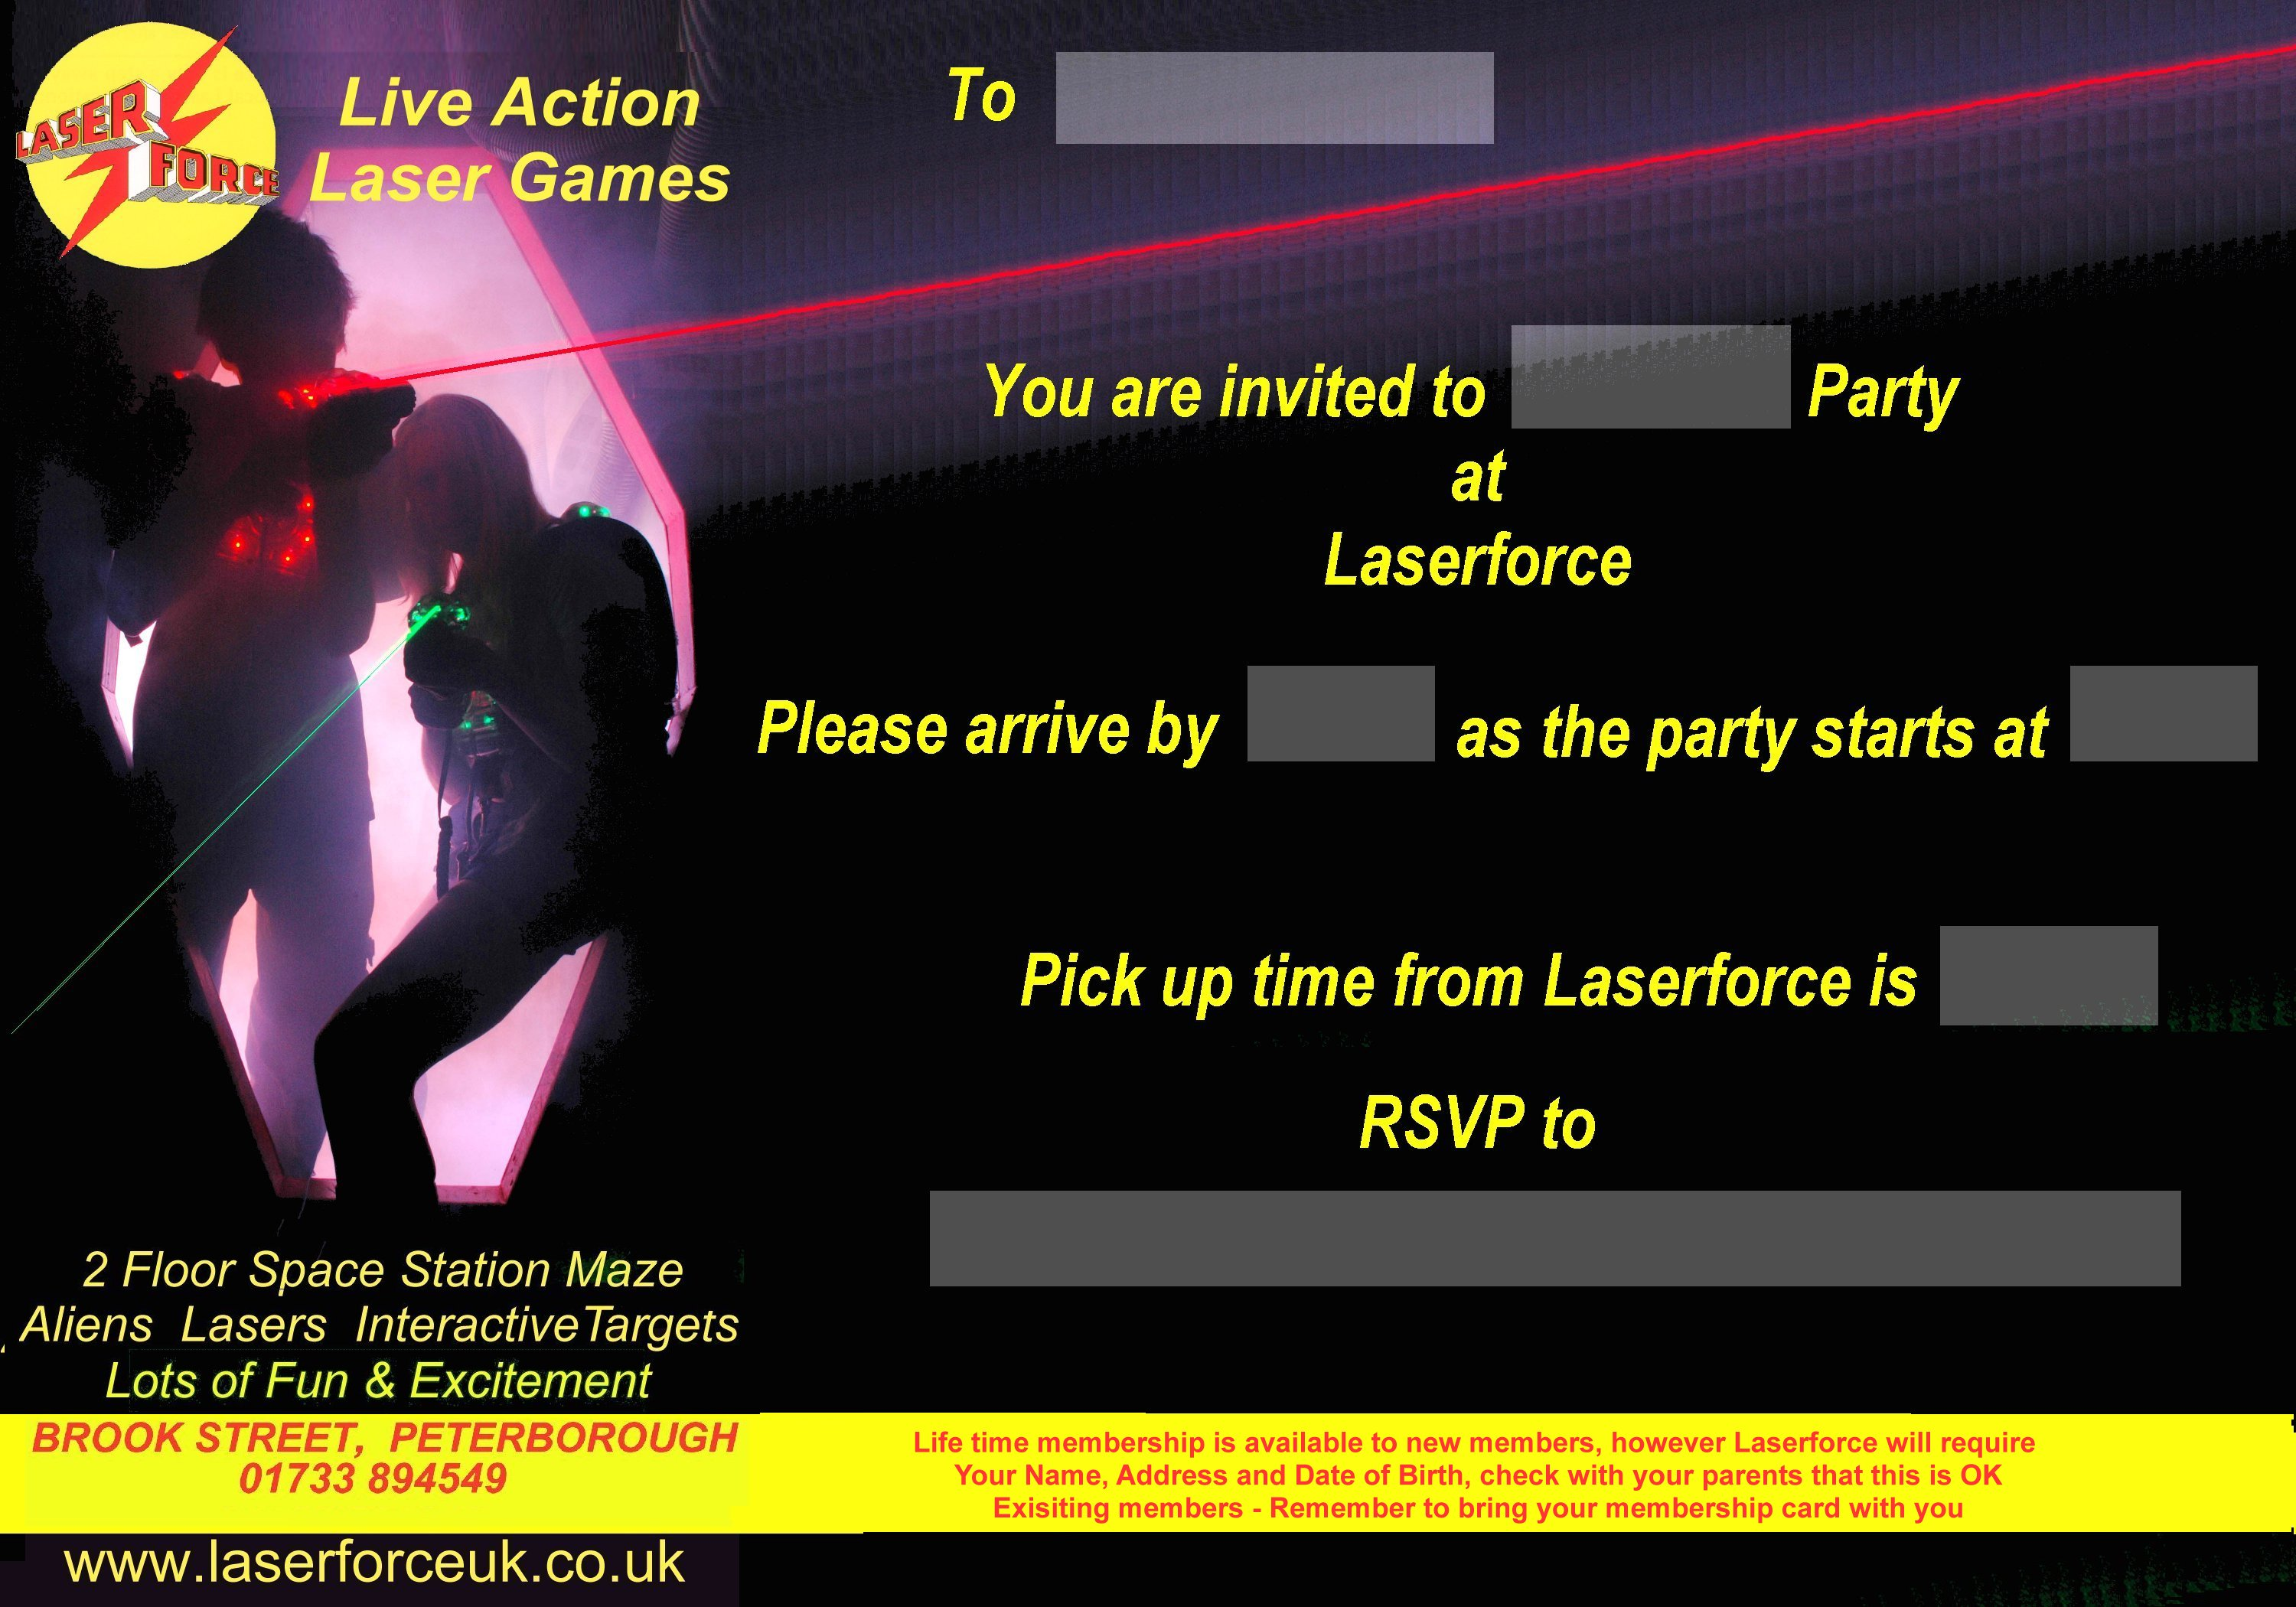 Laser Quest Party Invitations peacock themed wedding invitations